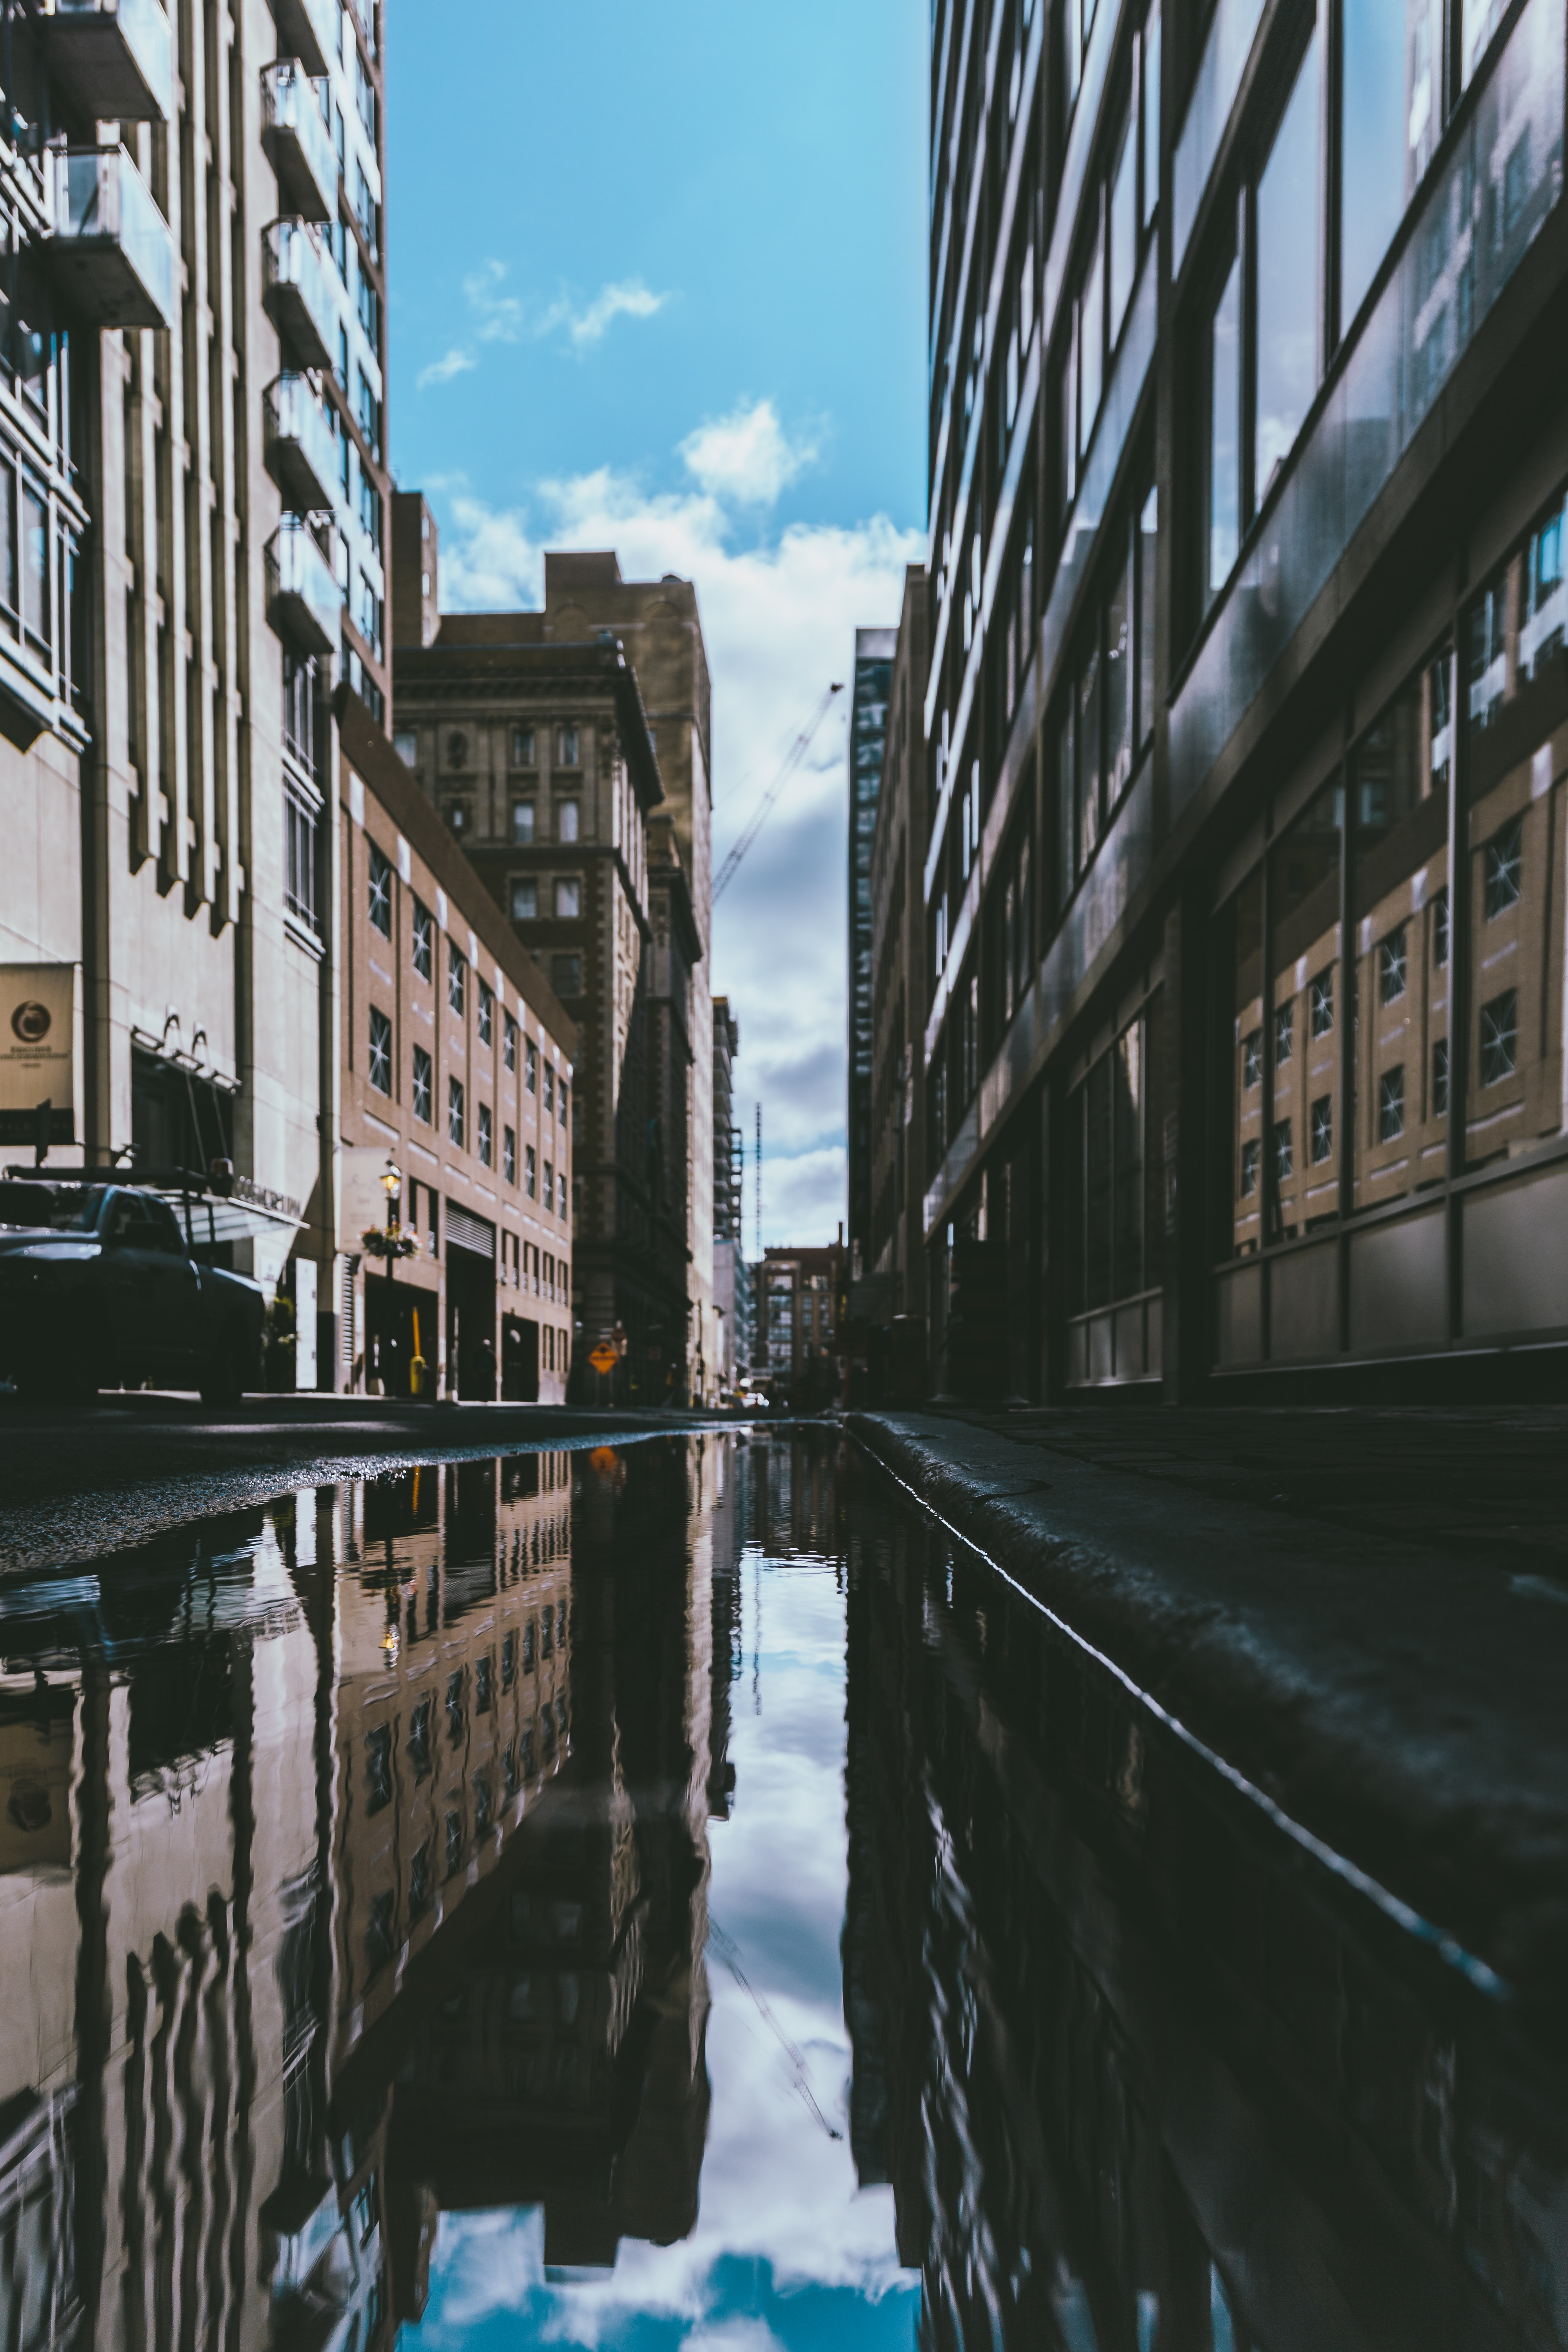 photography of body of water on street